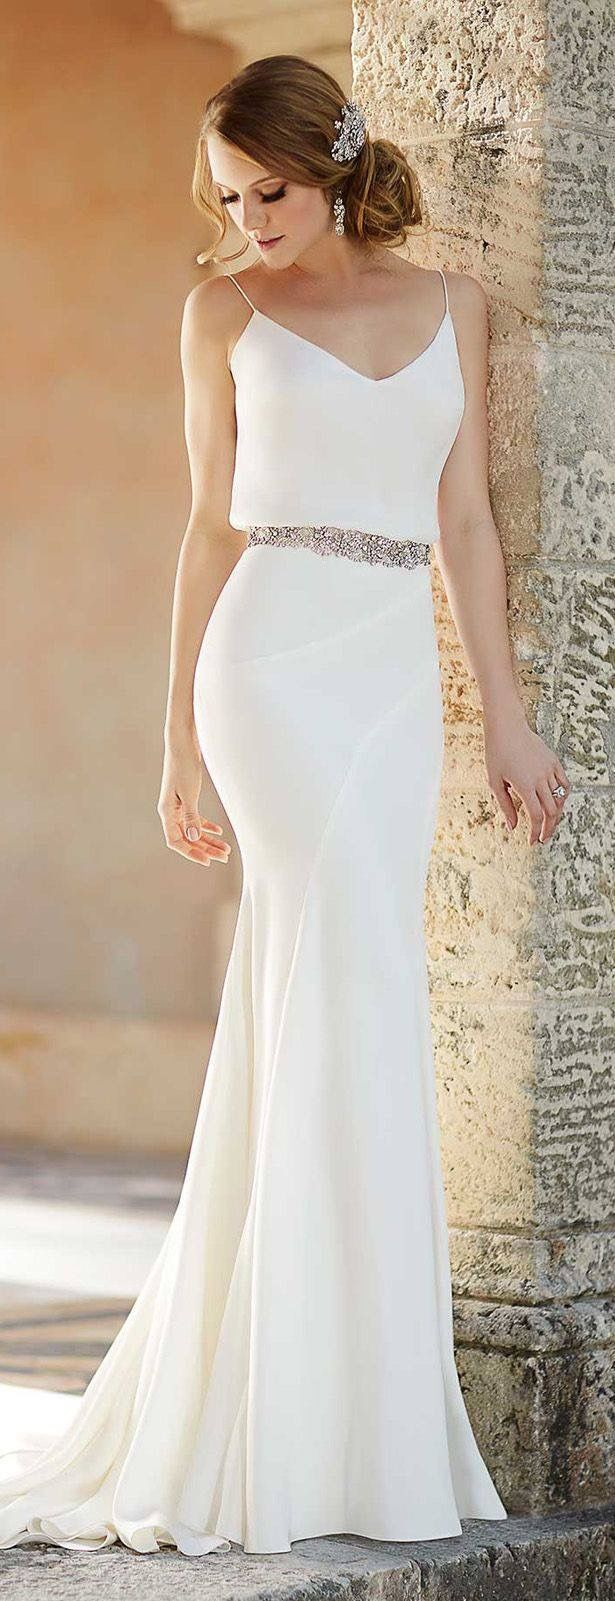 Pristine white wedding dress